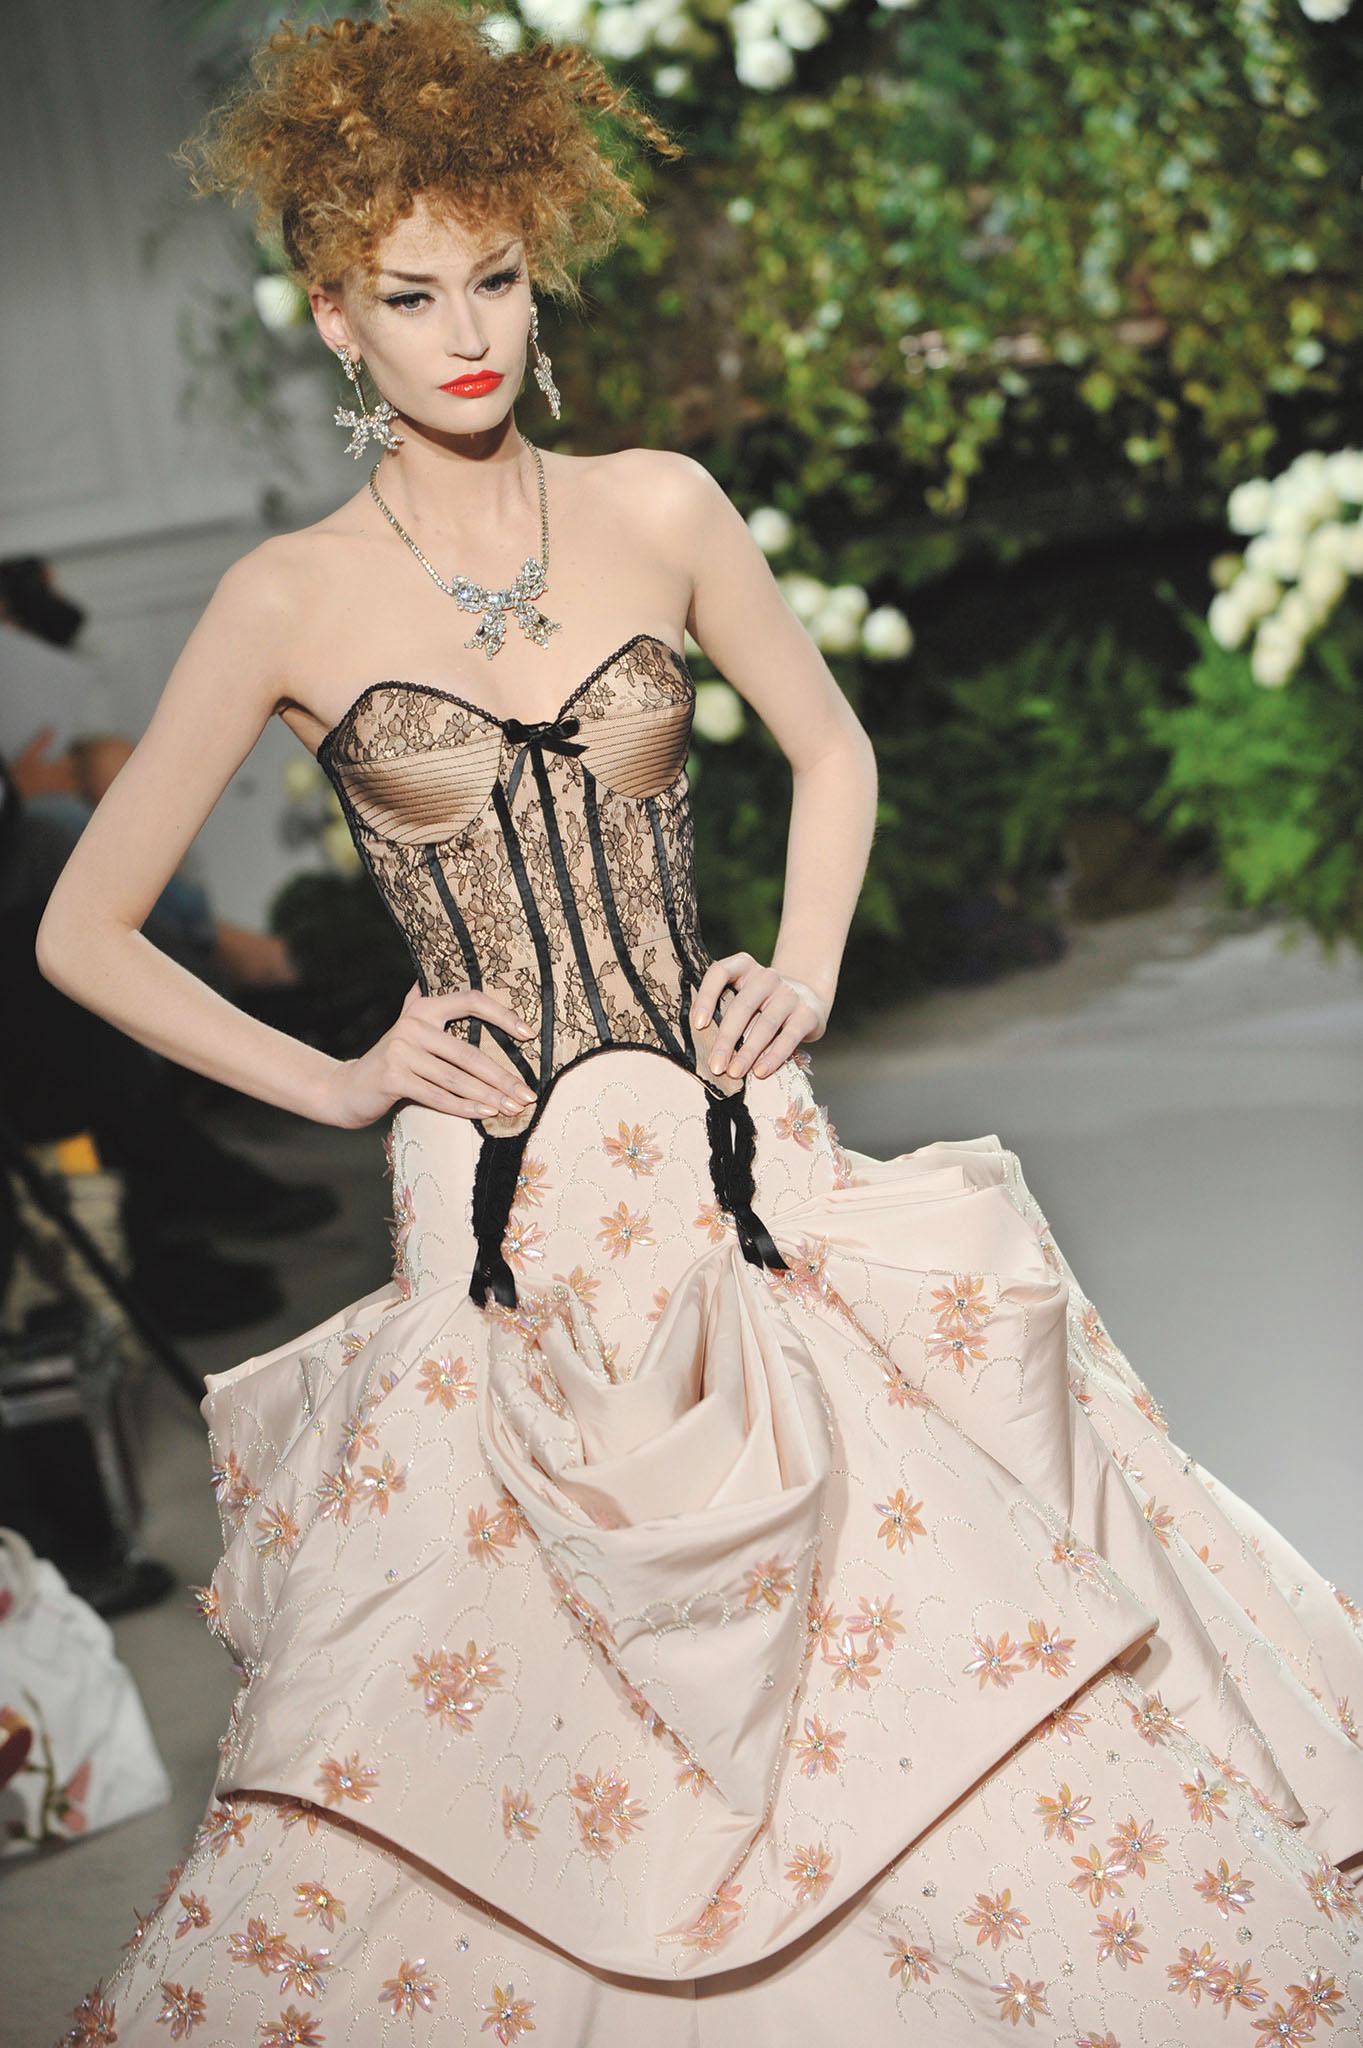 Fall 2009 Couture show in Paris, France for Christian Dior designed by John Galliano.